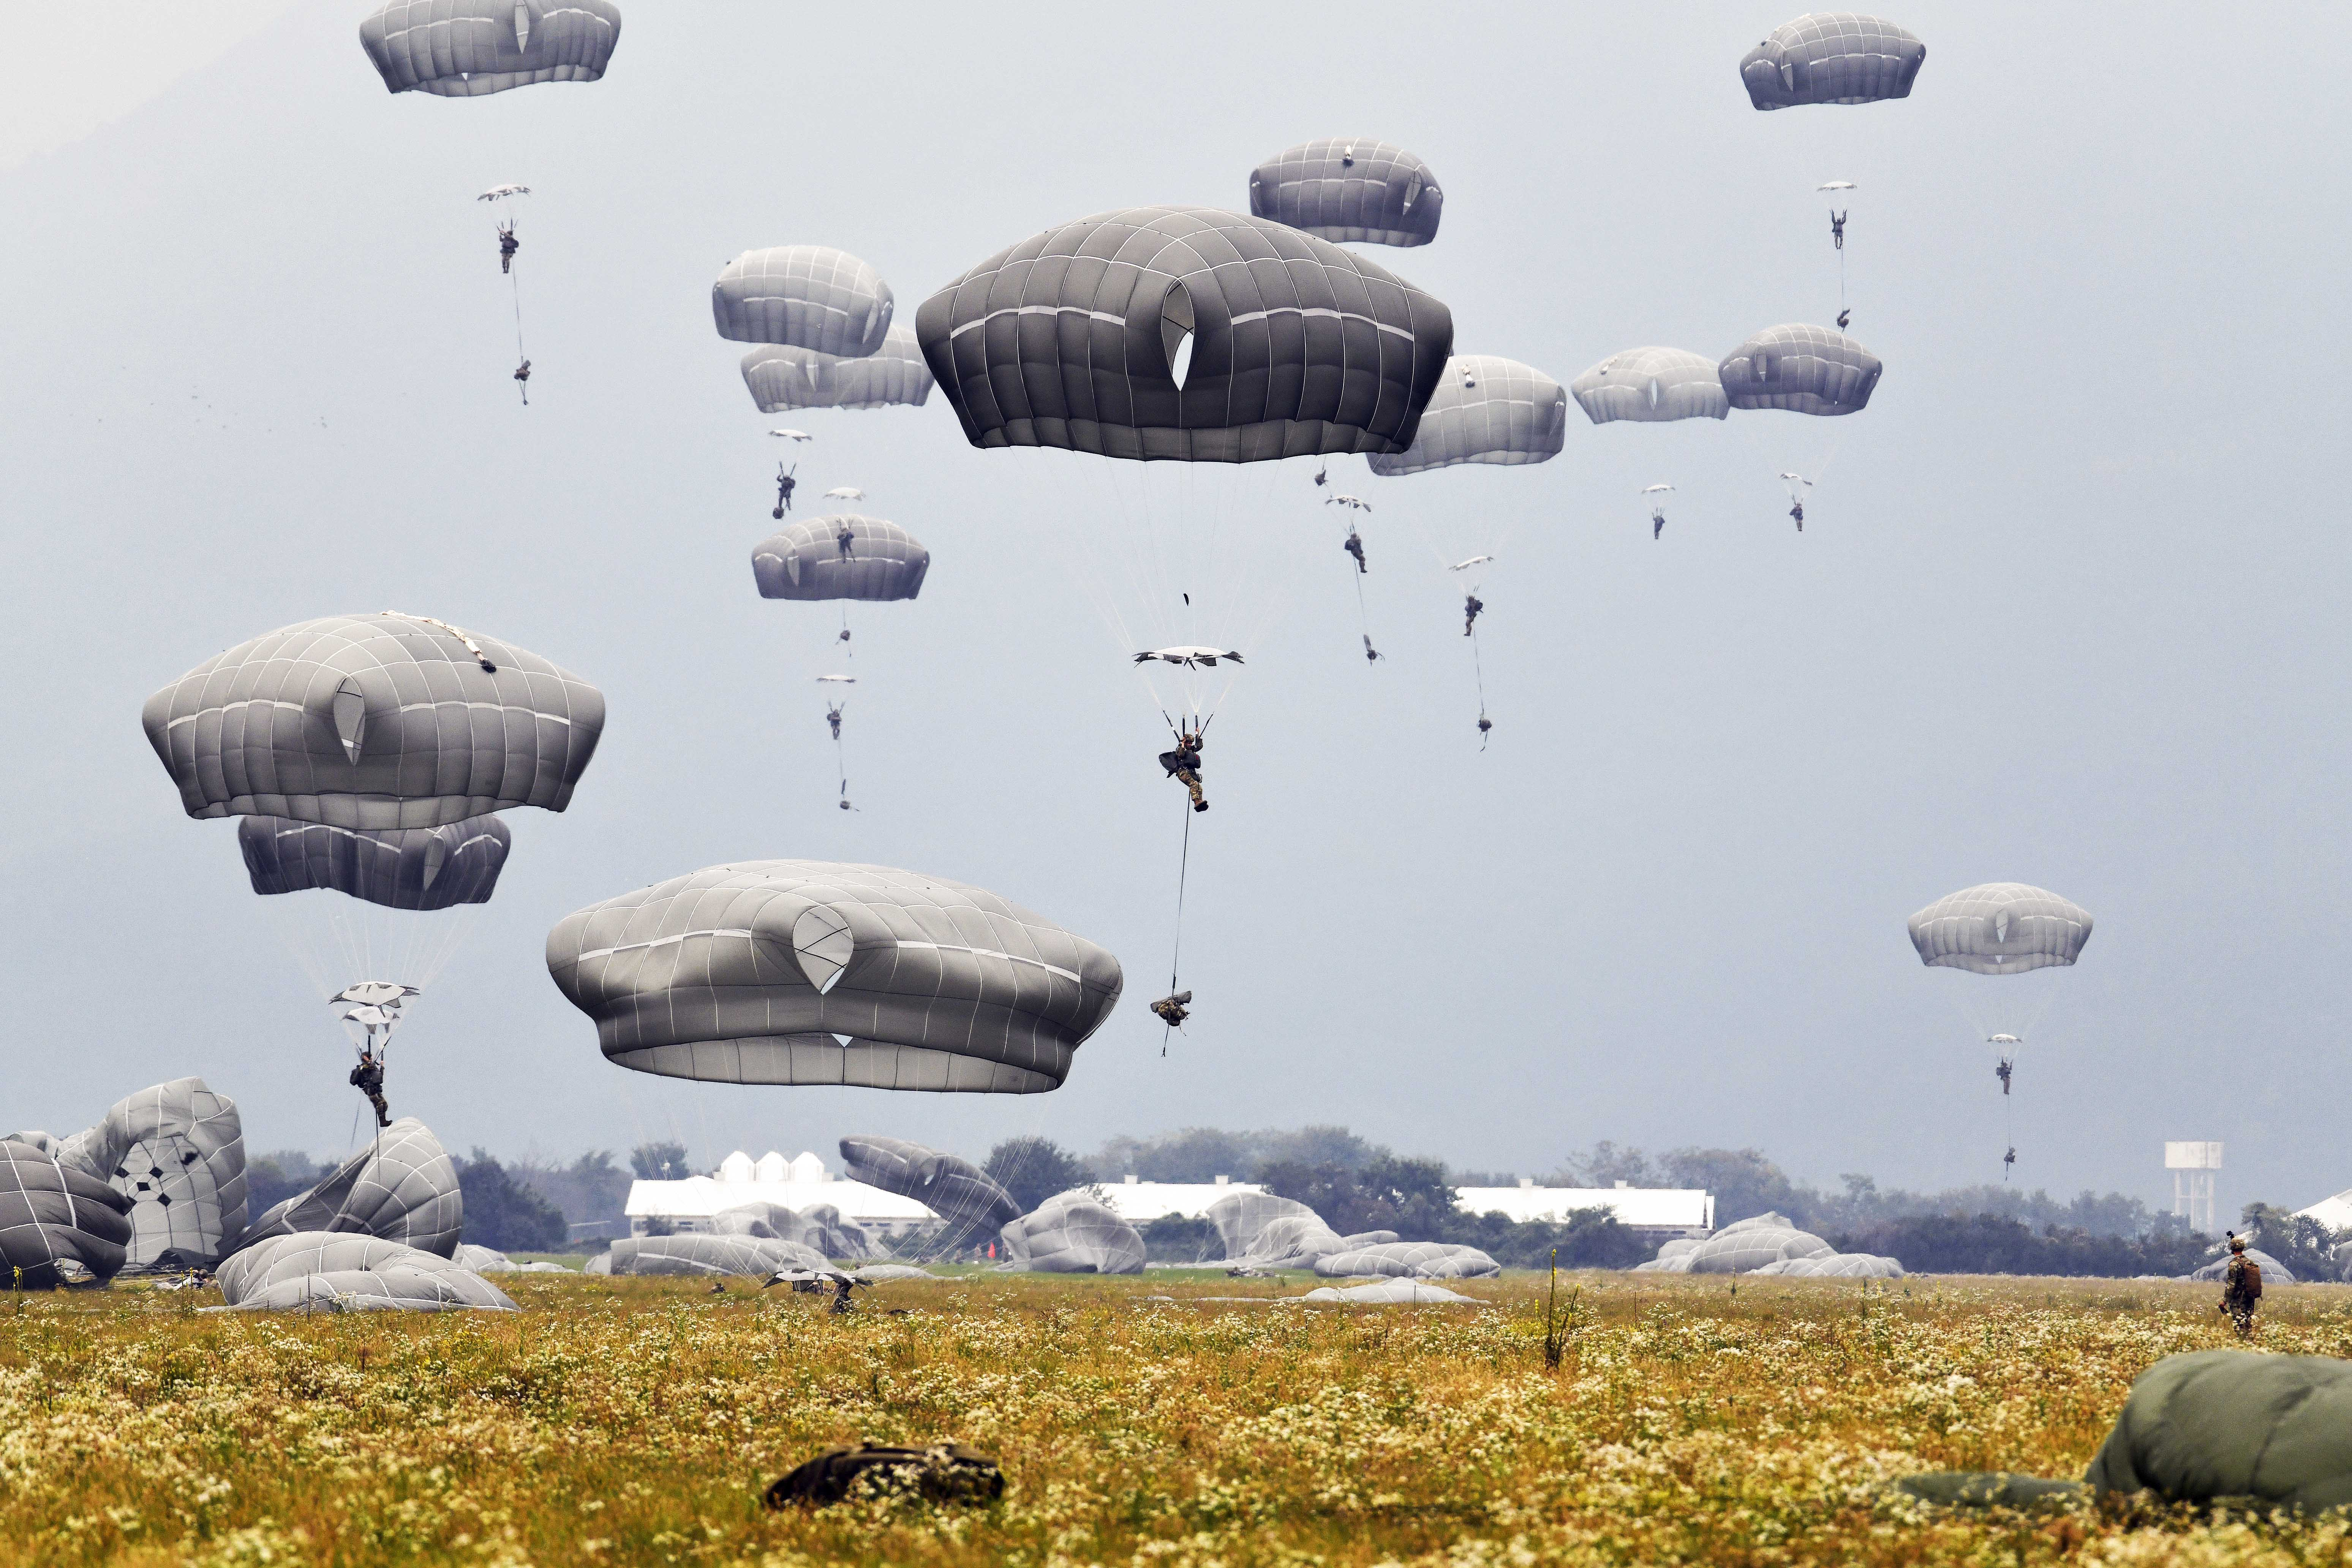 U.S. Army paratroopers descend onto Juliet Drop Zone after exiting a U.S. Air Force C-130 Hercules aircraft during airborne operations at Pordenone, Italy, Oct. 1, 2020. (Paolo Bovo/Army)